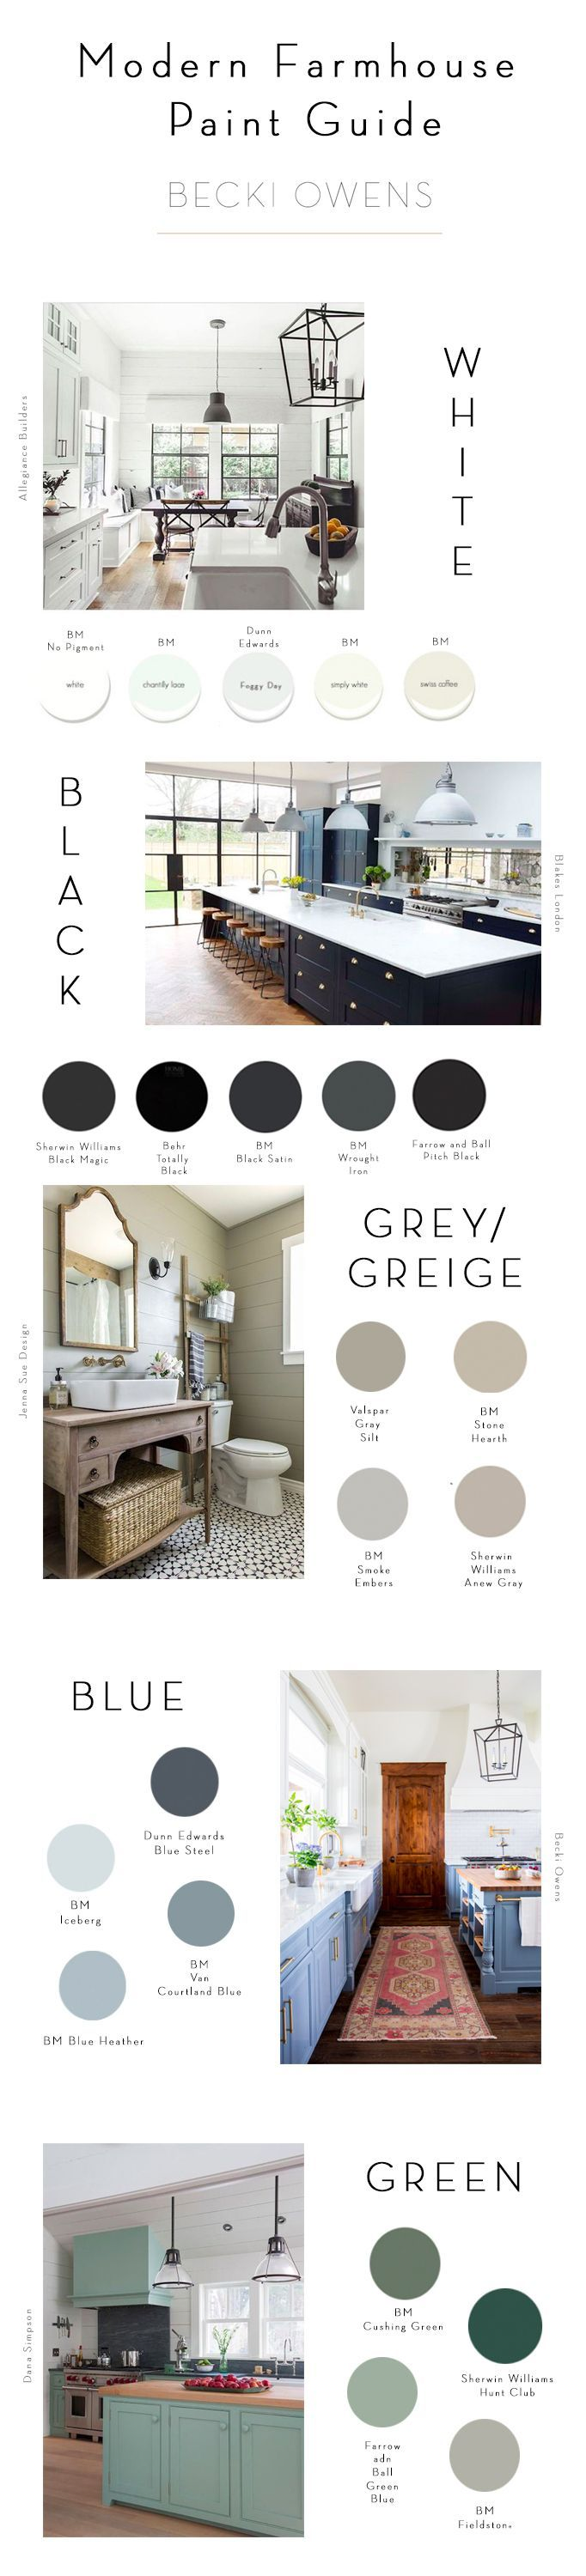 The modern farmhouse combines clean lines, industrial touches, rustic woods, and soft colors. Today I am sharing the paint colors that get the look.